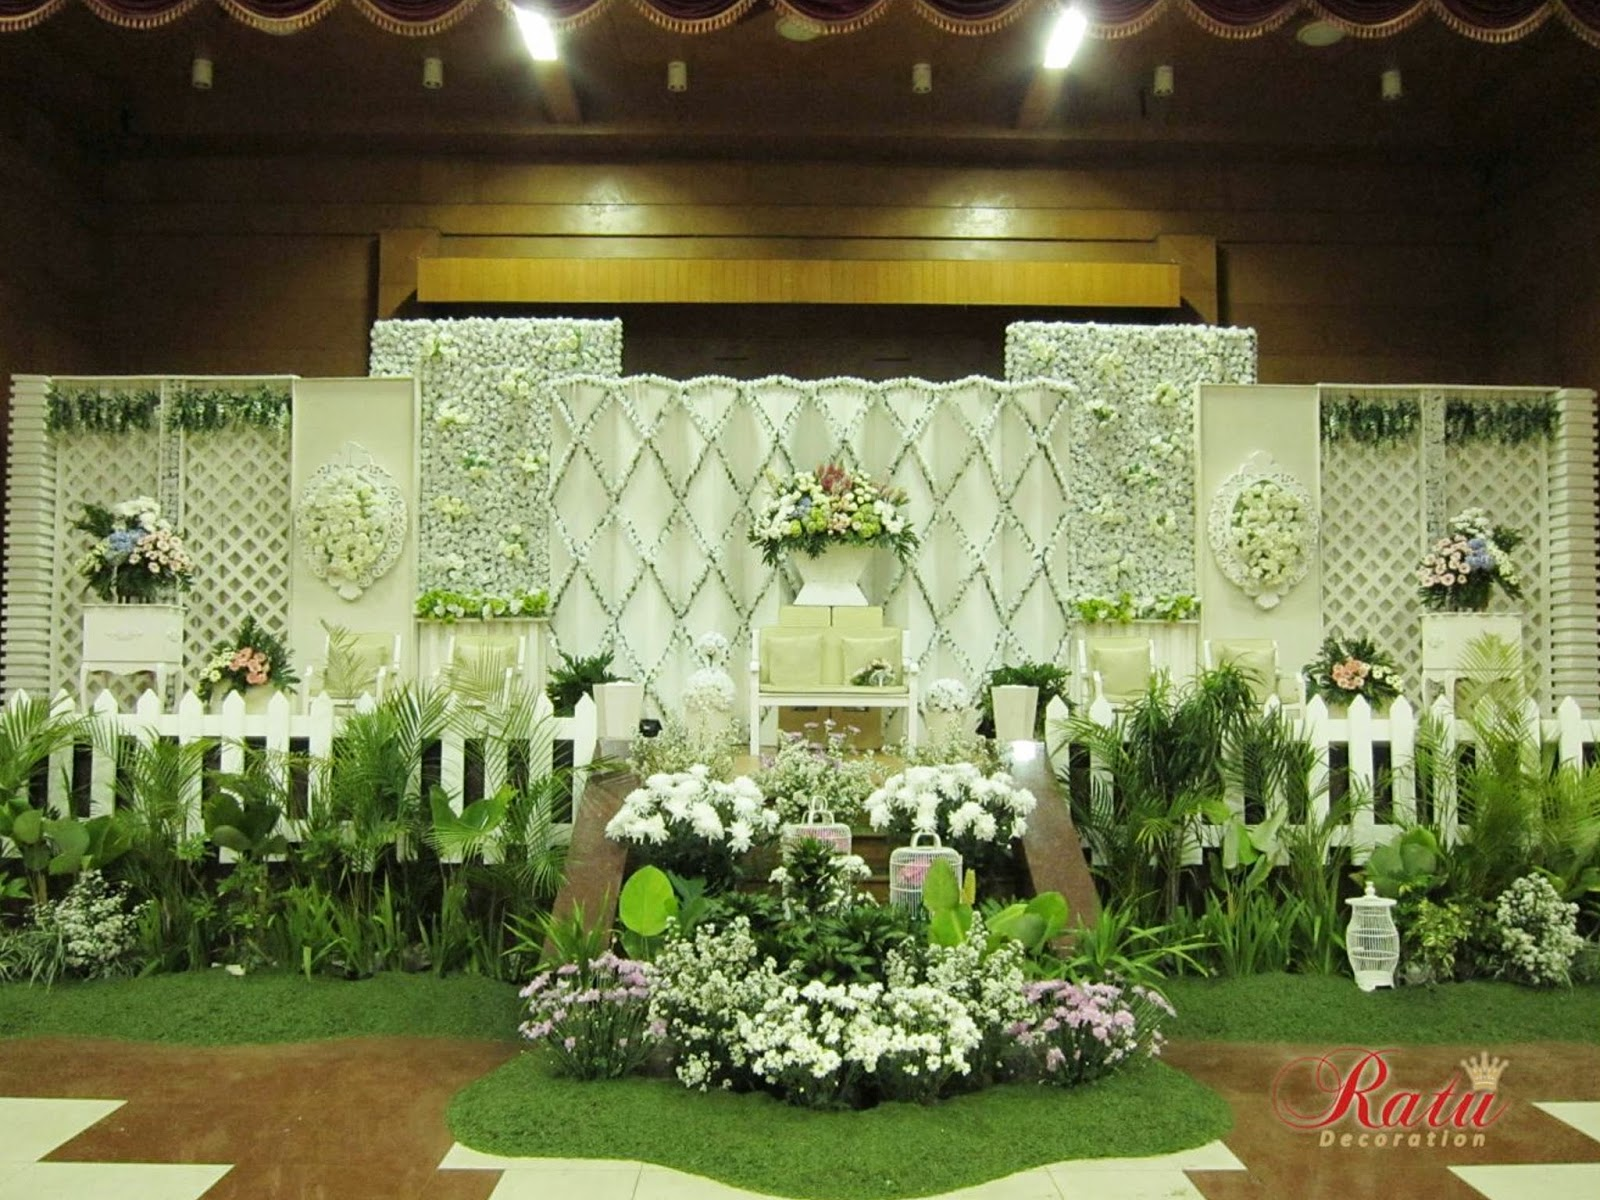 Ratu wedding decoration bandung image collections wedding dress ratu wedding decoration bandung images wedding dress decoration ratu wedding decoration bandung gallery wedding dress decoration junglespirit Images